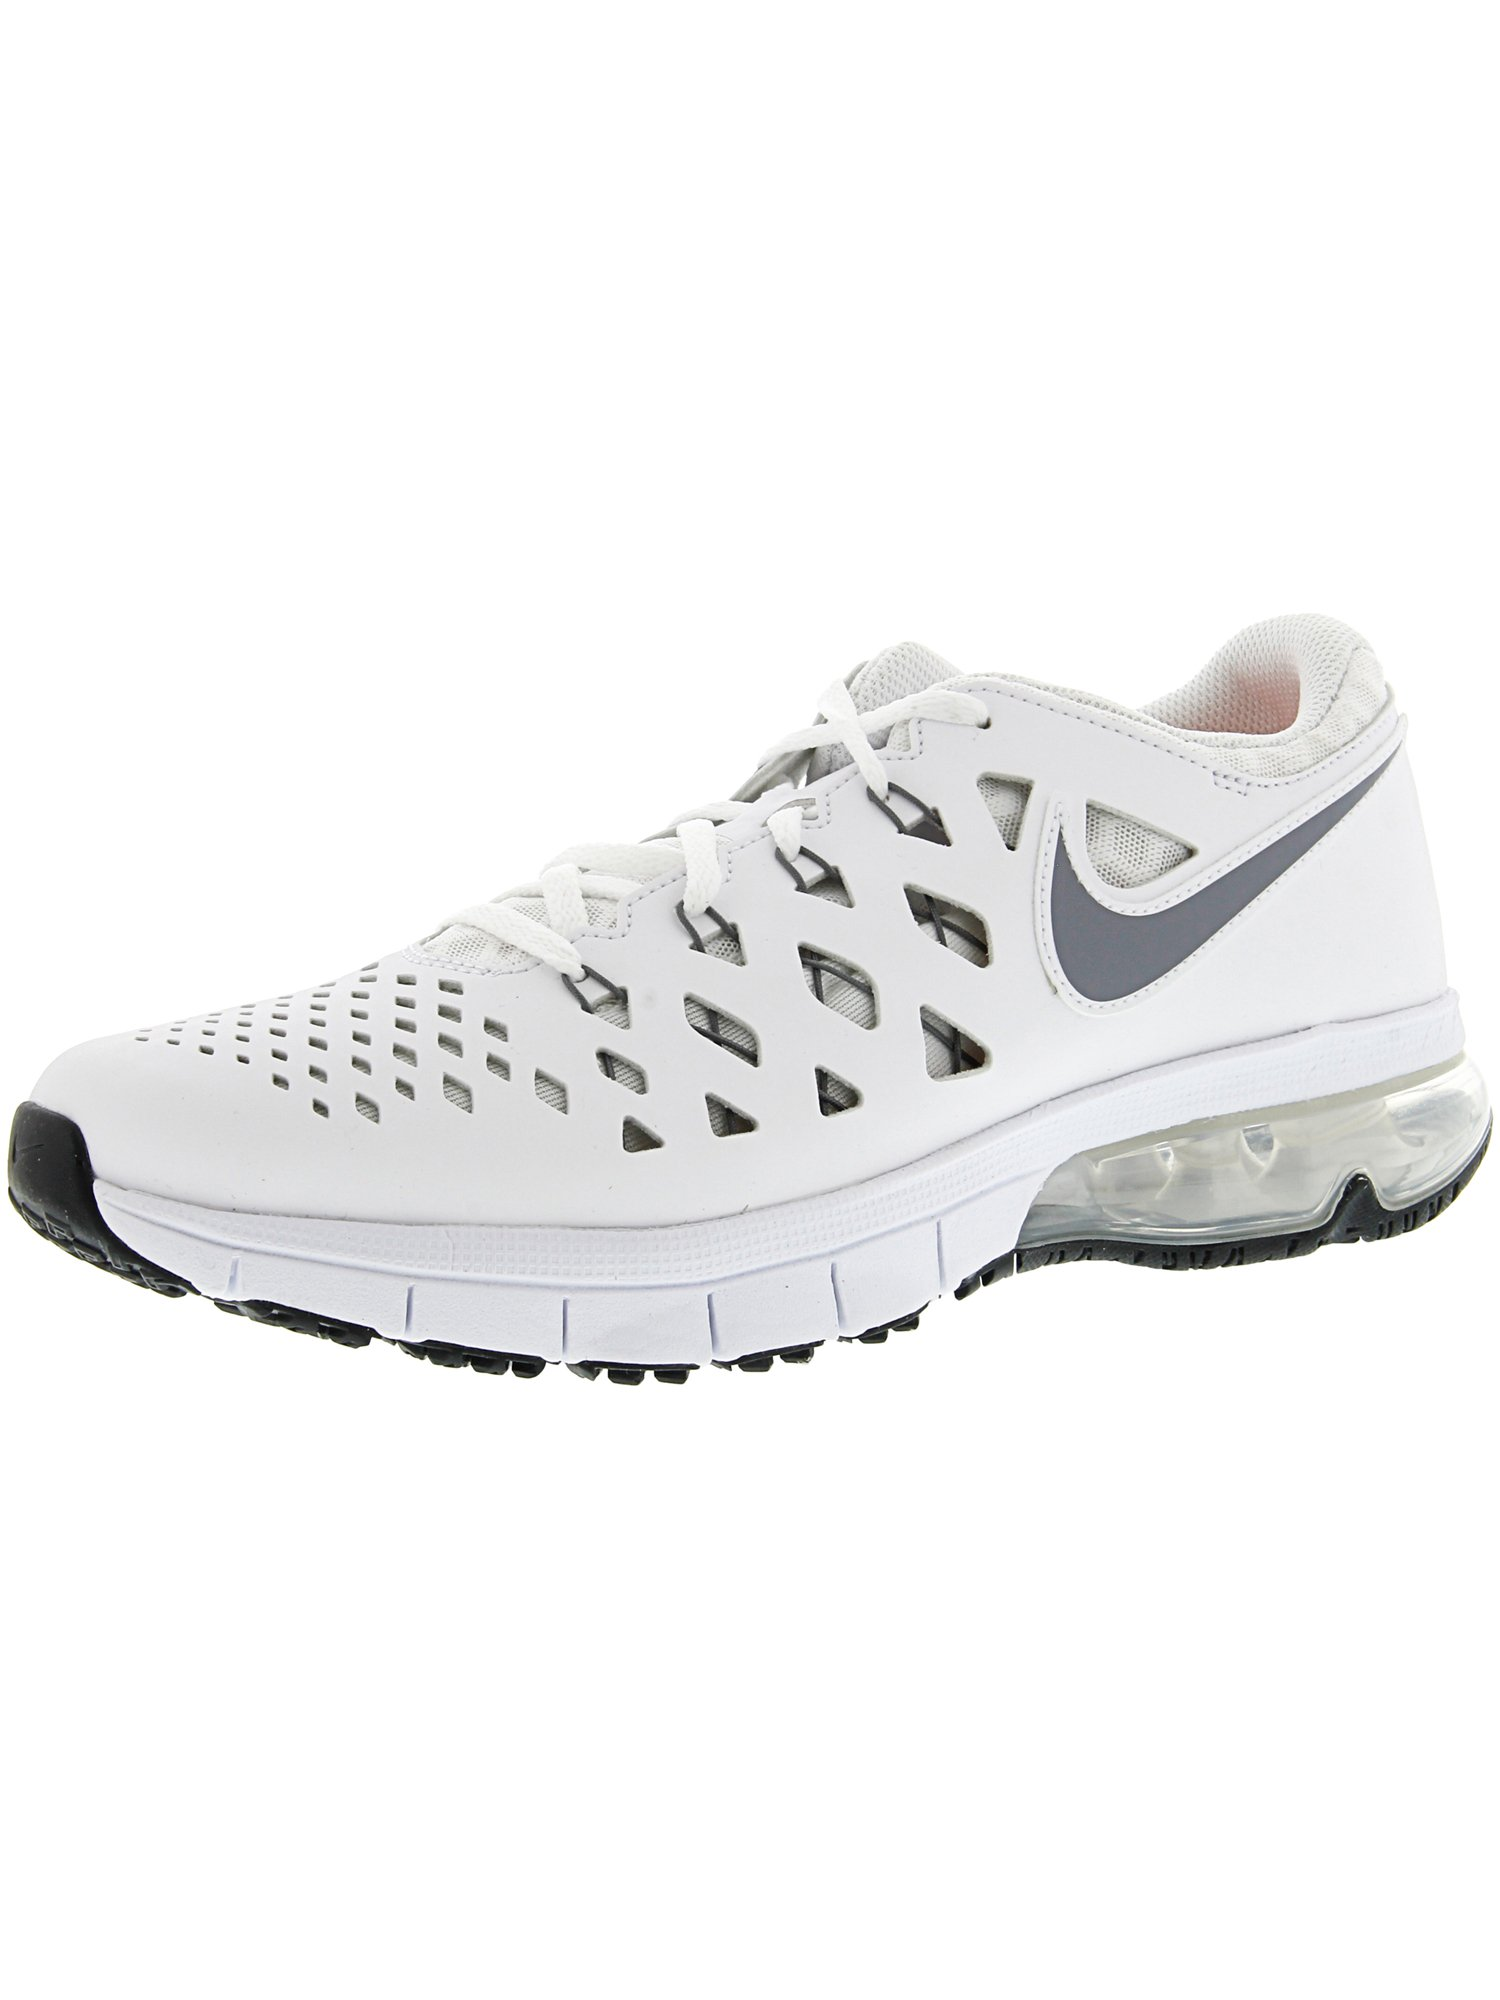 9db766848cad63 Nike Men s Air Trainer 180 White   Cool Grey - Black Ankle-High Training  Shoes 11M